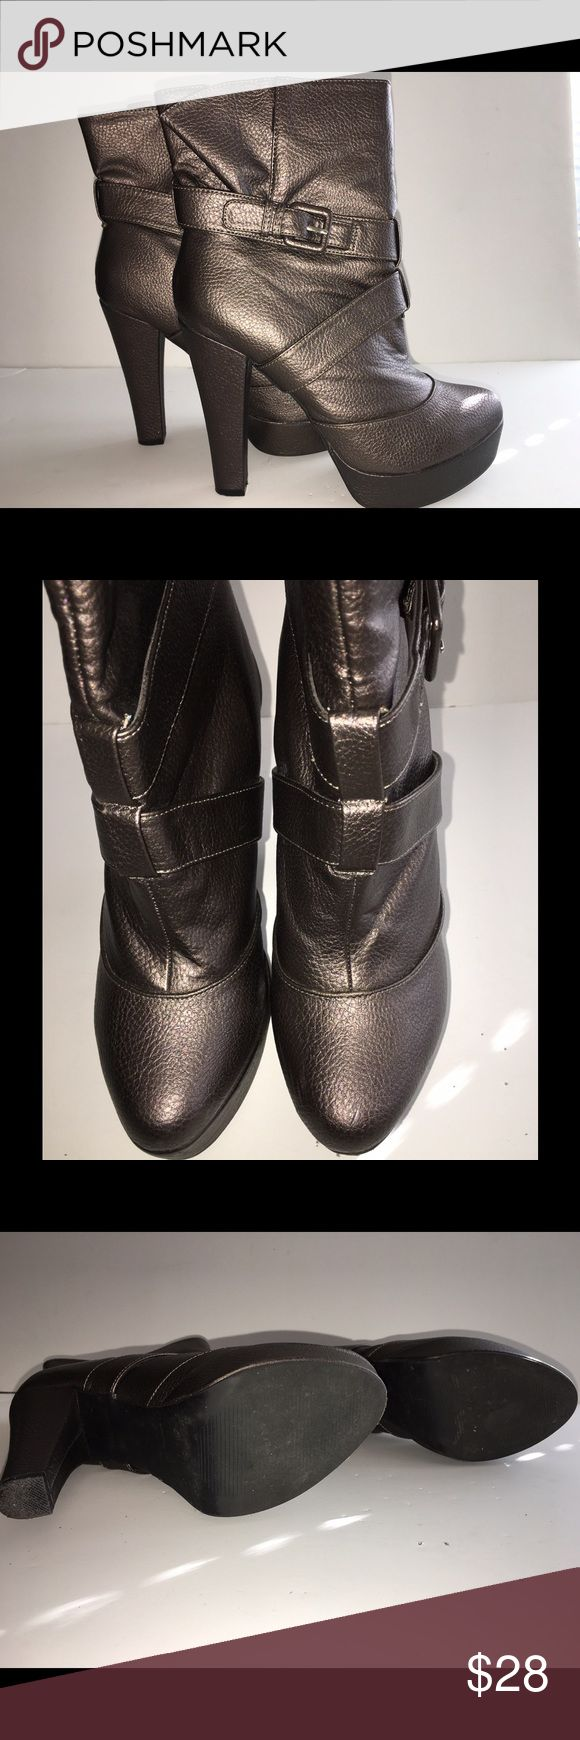 "SOFIA VERGARA Platform Ankle Boot Size 8 SOFIA VERGARA Size 8 Women's Tailgate Short Platform Boot In Pewter/Bronze (depending on lighting).        Heel Height-5"" Platform Height-1.5. ONLY WORN A FEW TIMES. PERFECT Condition. Sofia Vergara Shoes Ankle Boots & Booties"